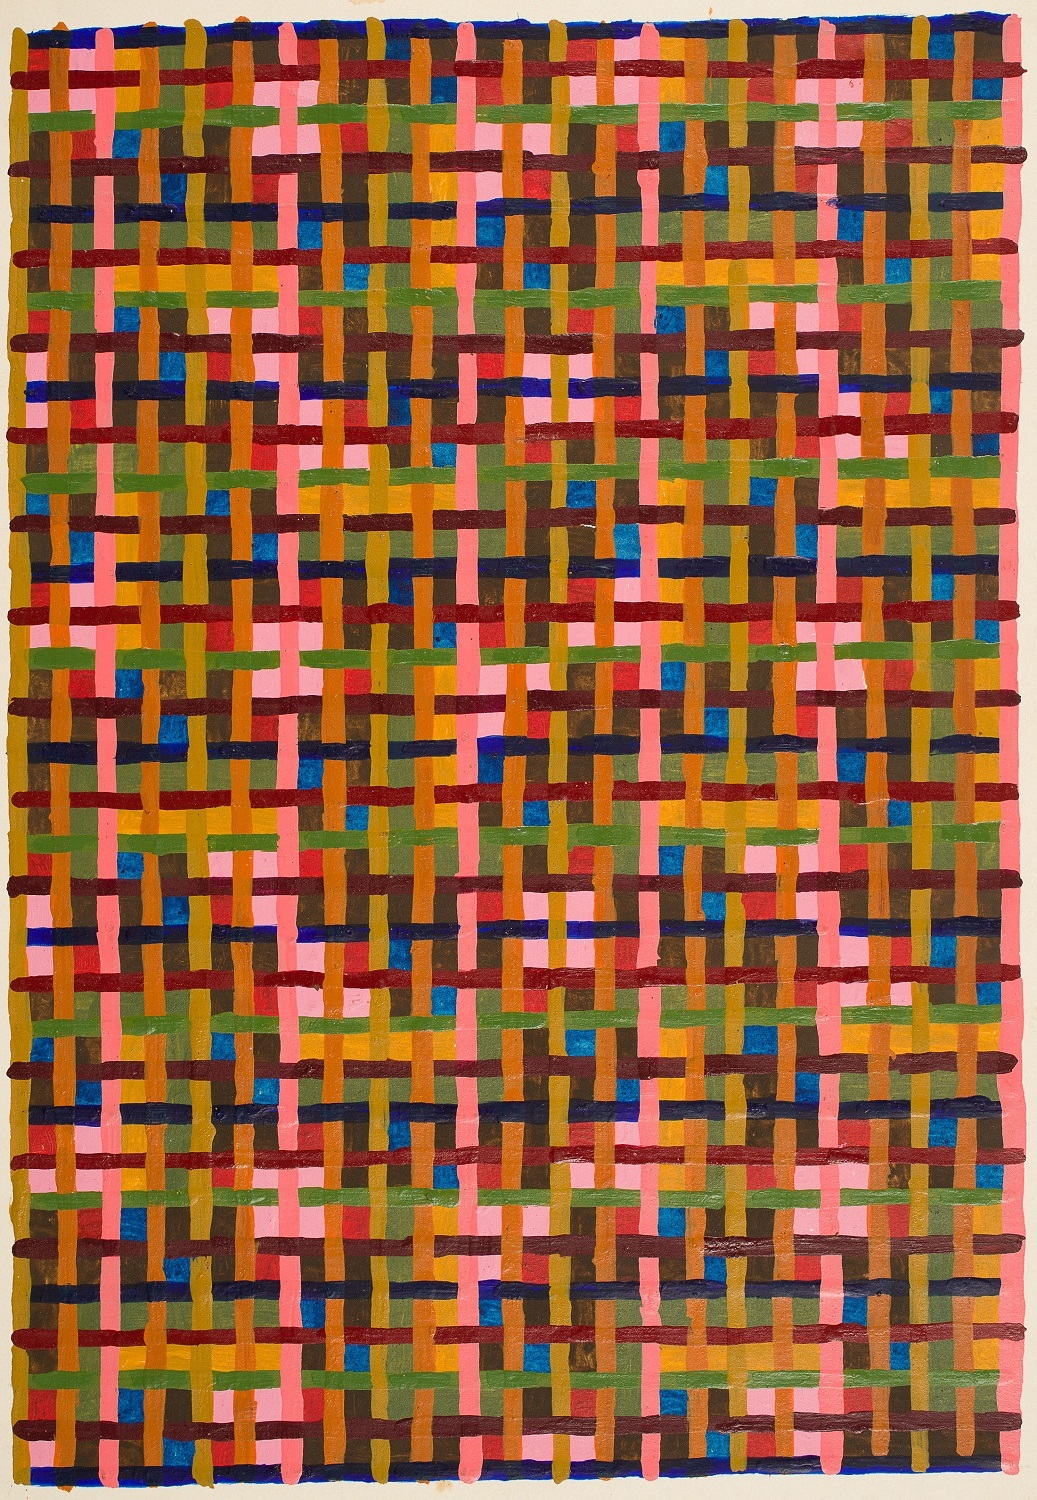 Peter Young,  Study for a Painting , 1979. Acrylic on paper, 12 x 8 1/4 inches (30.5 x 21 cm)